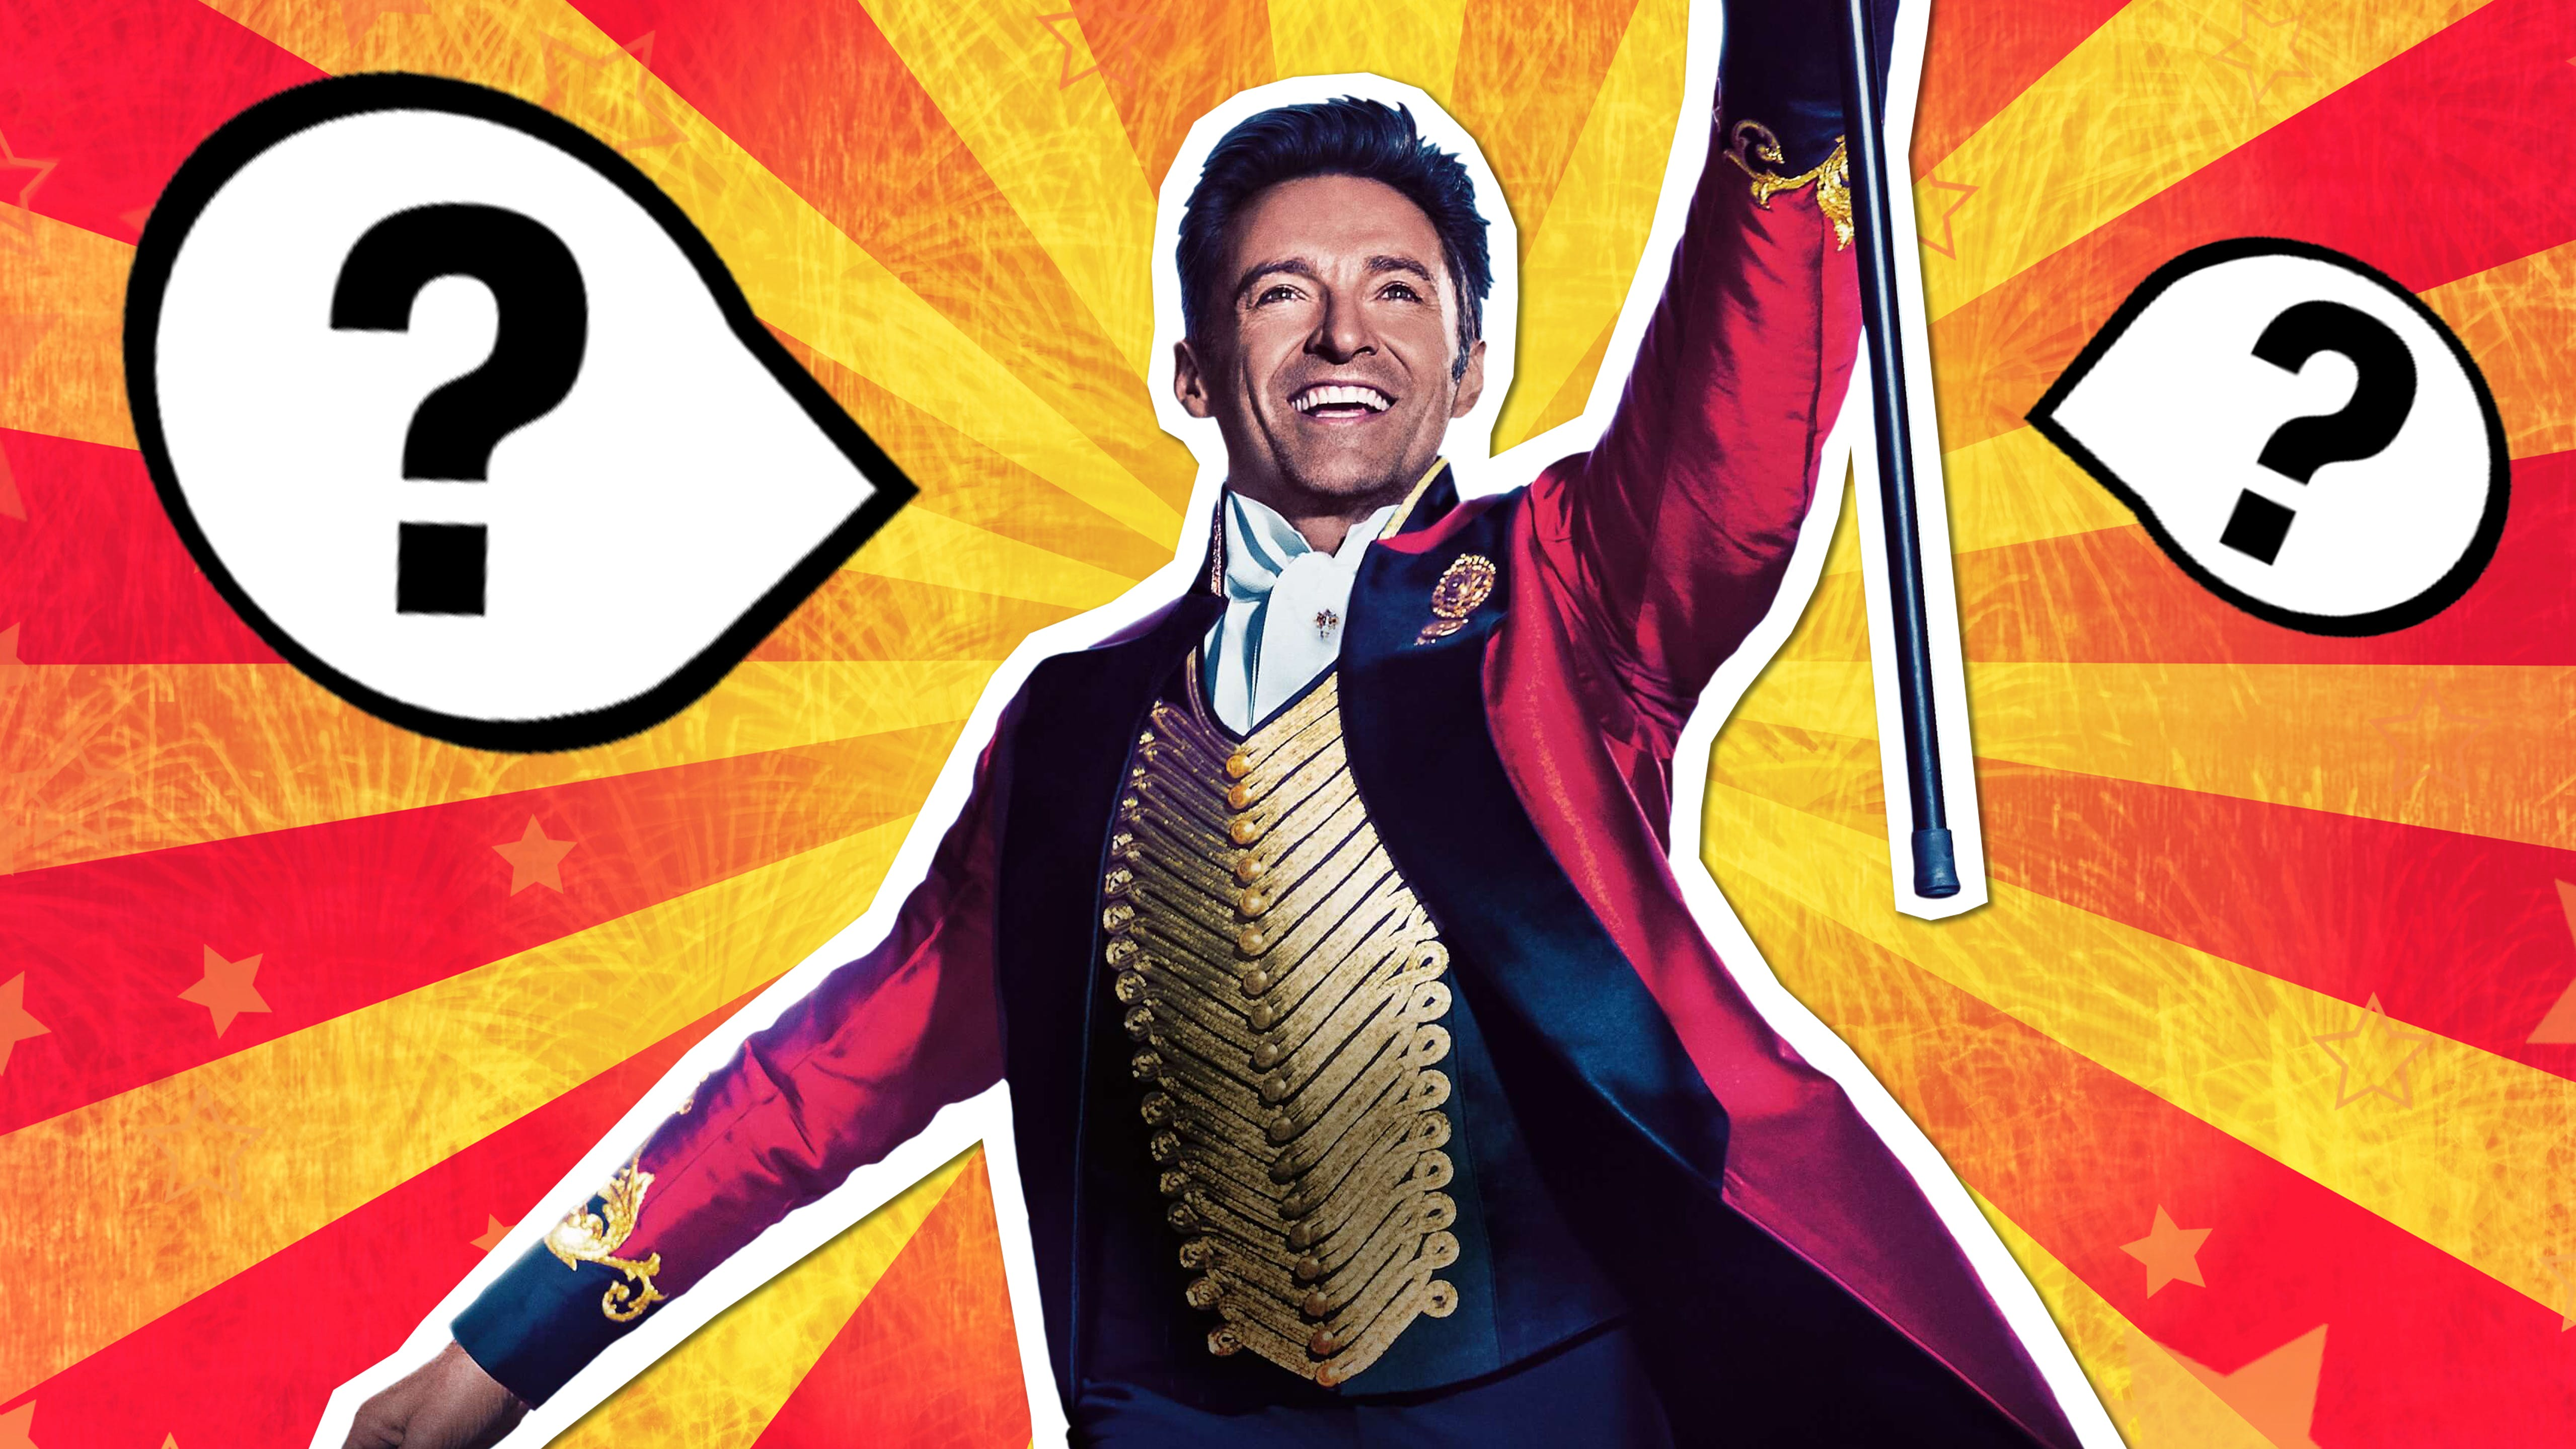 The Greatest Showman lyrics quiz - Hugh Jackman in costume with question marks in place of lyrics